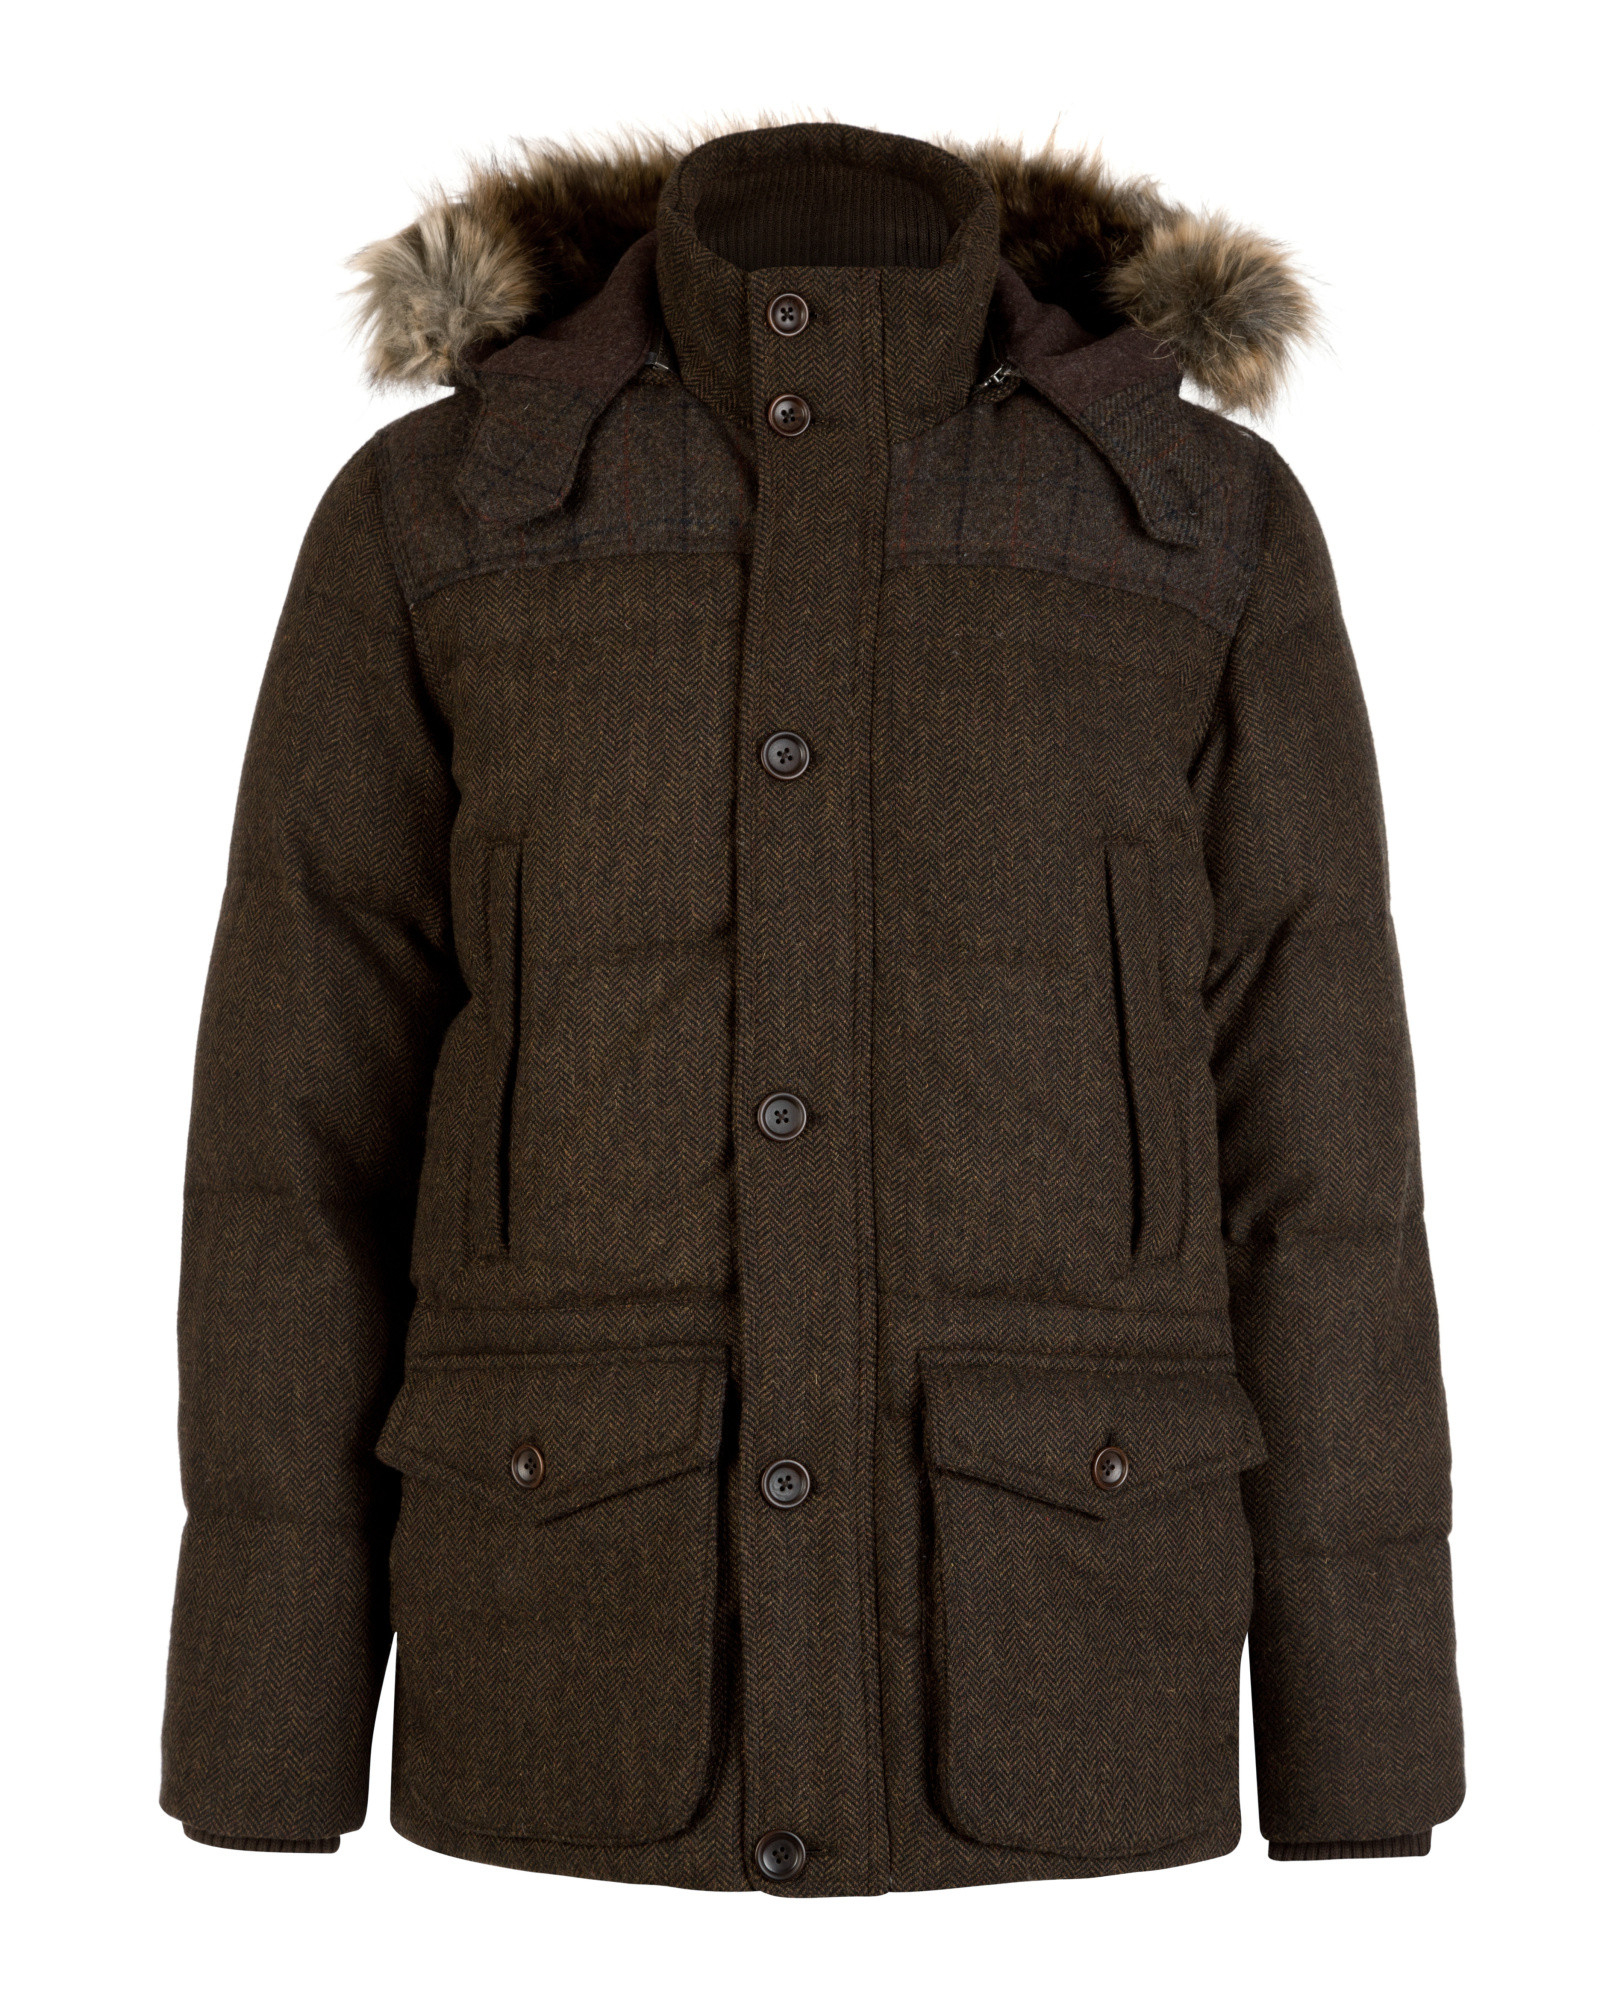 Ted baker Herringbone Puffer Coat in Brown for Men | Lyst